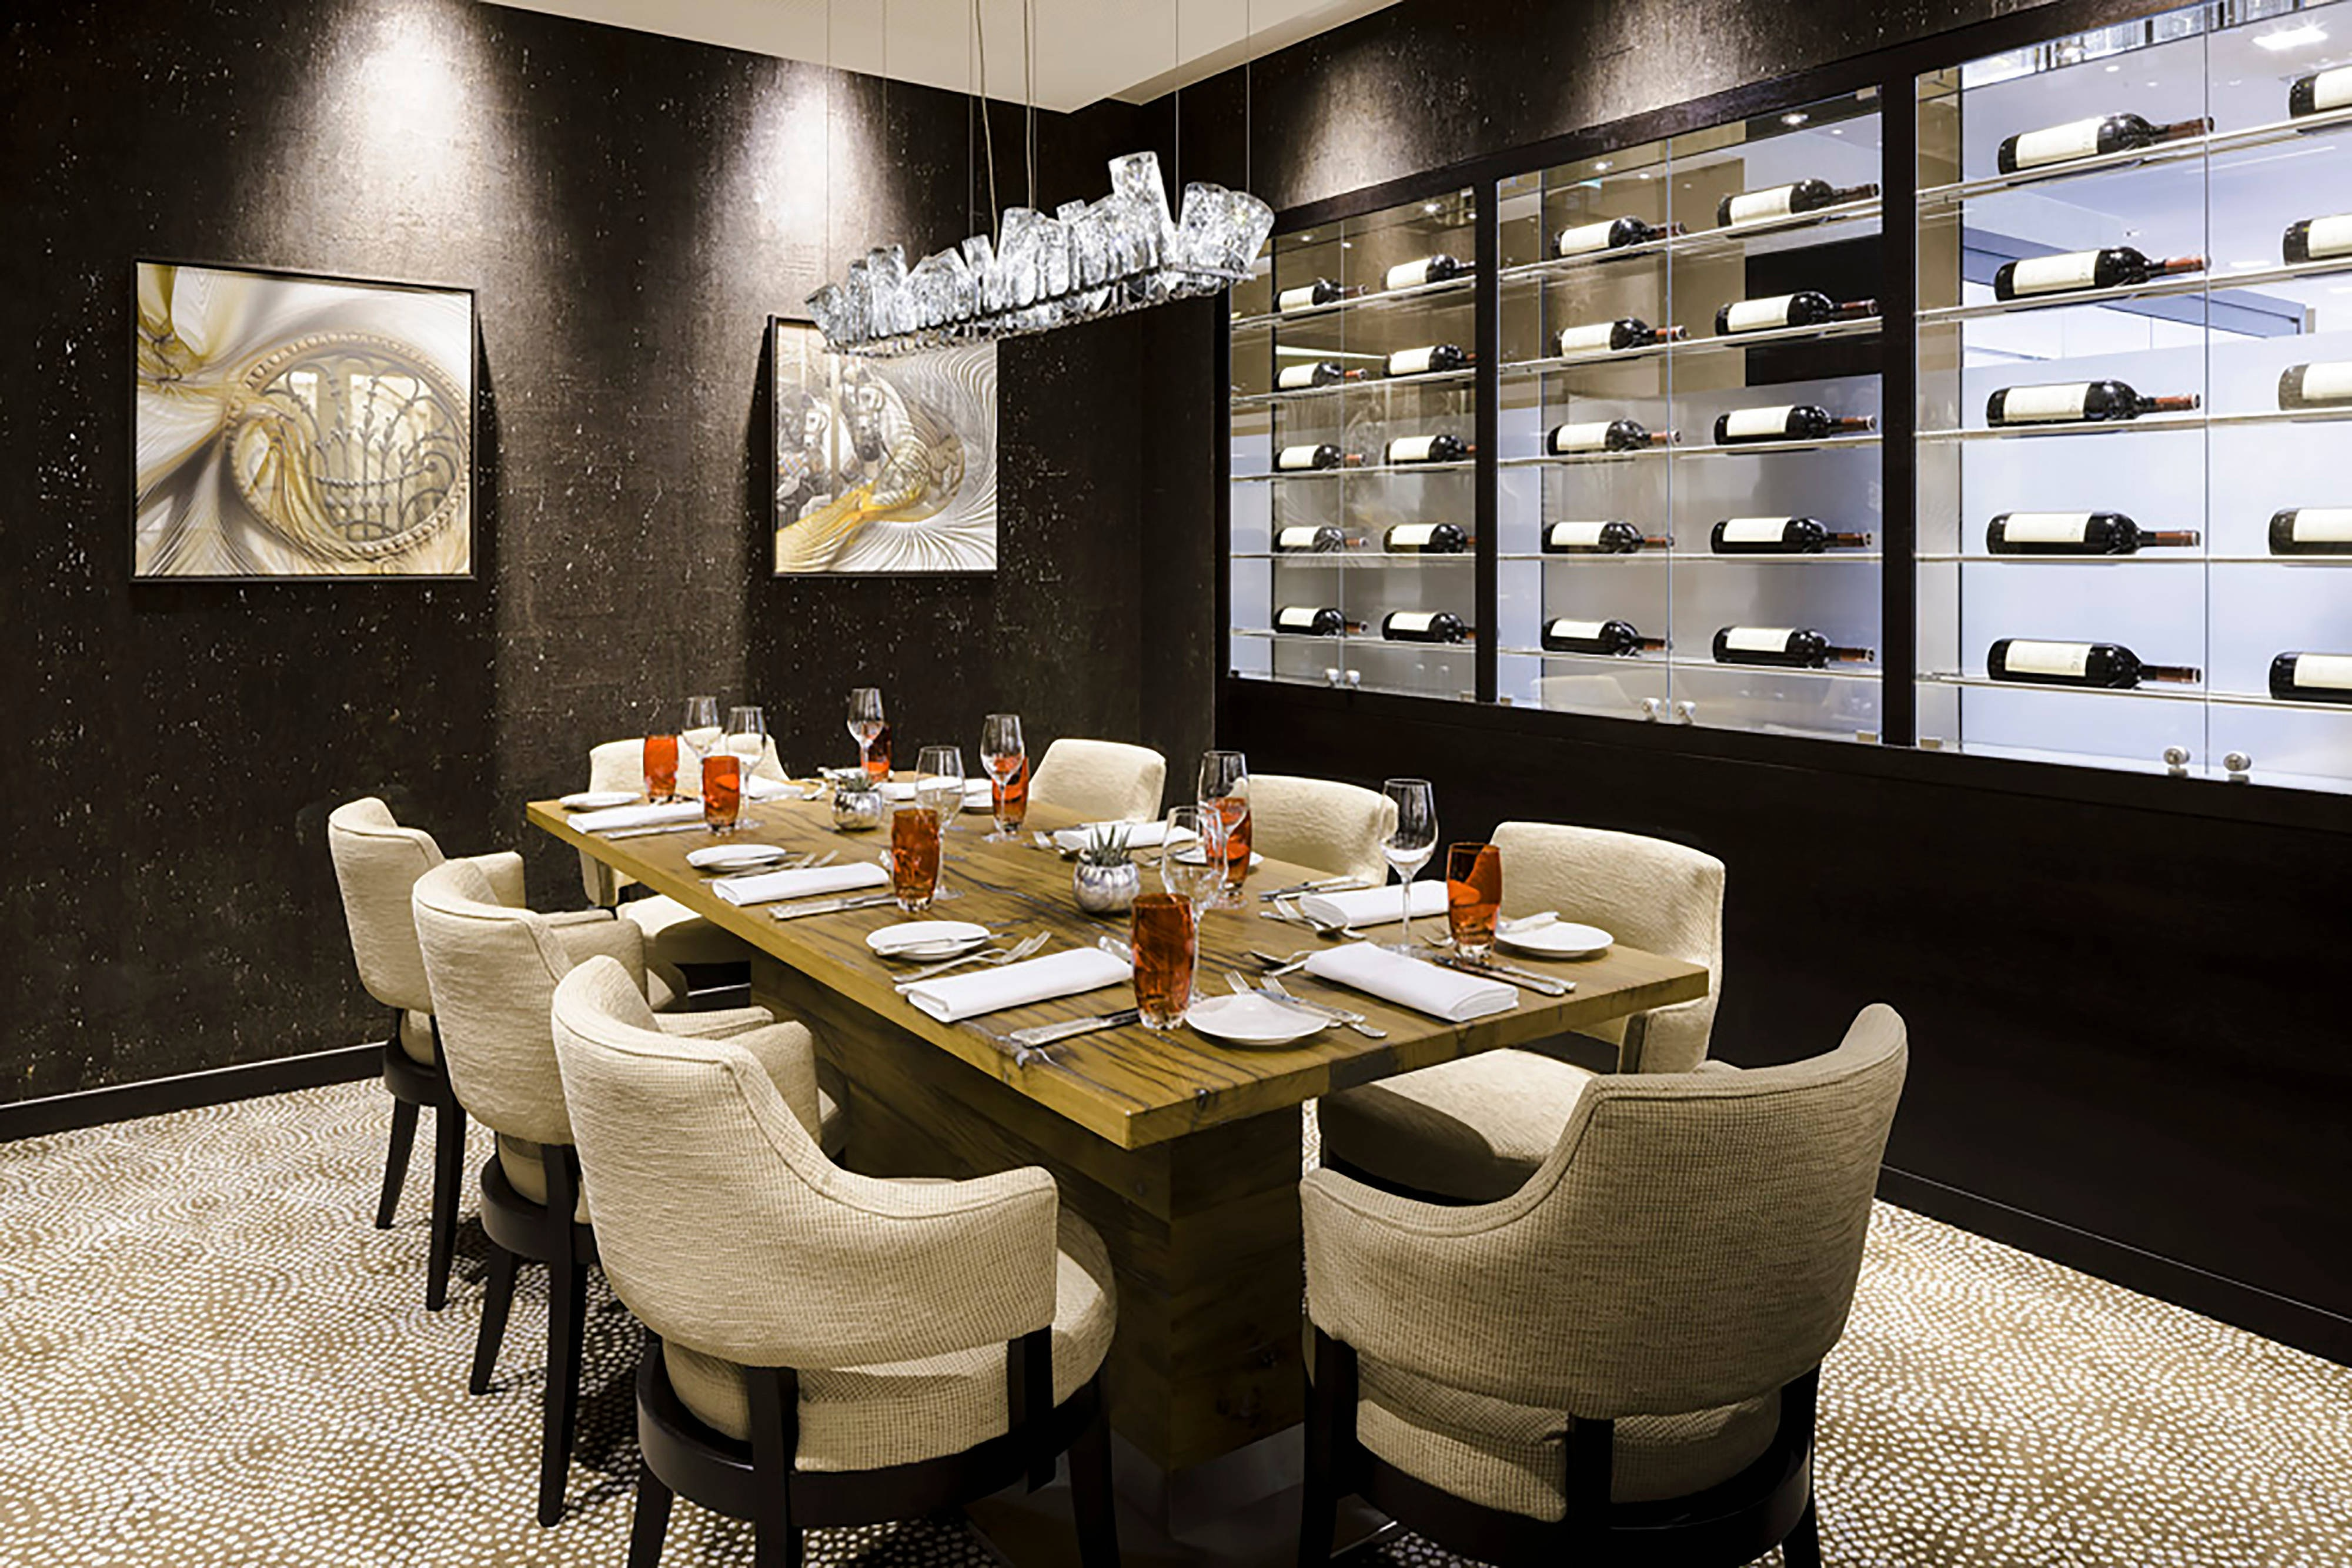 Parkring Restaurant – Private Dining Room